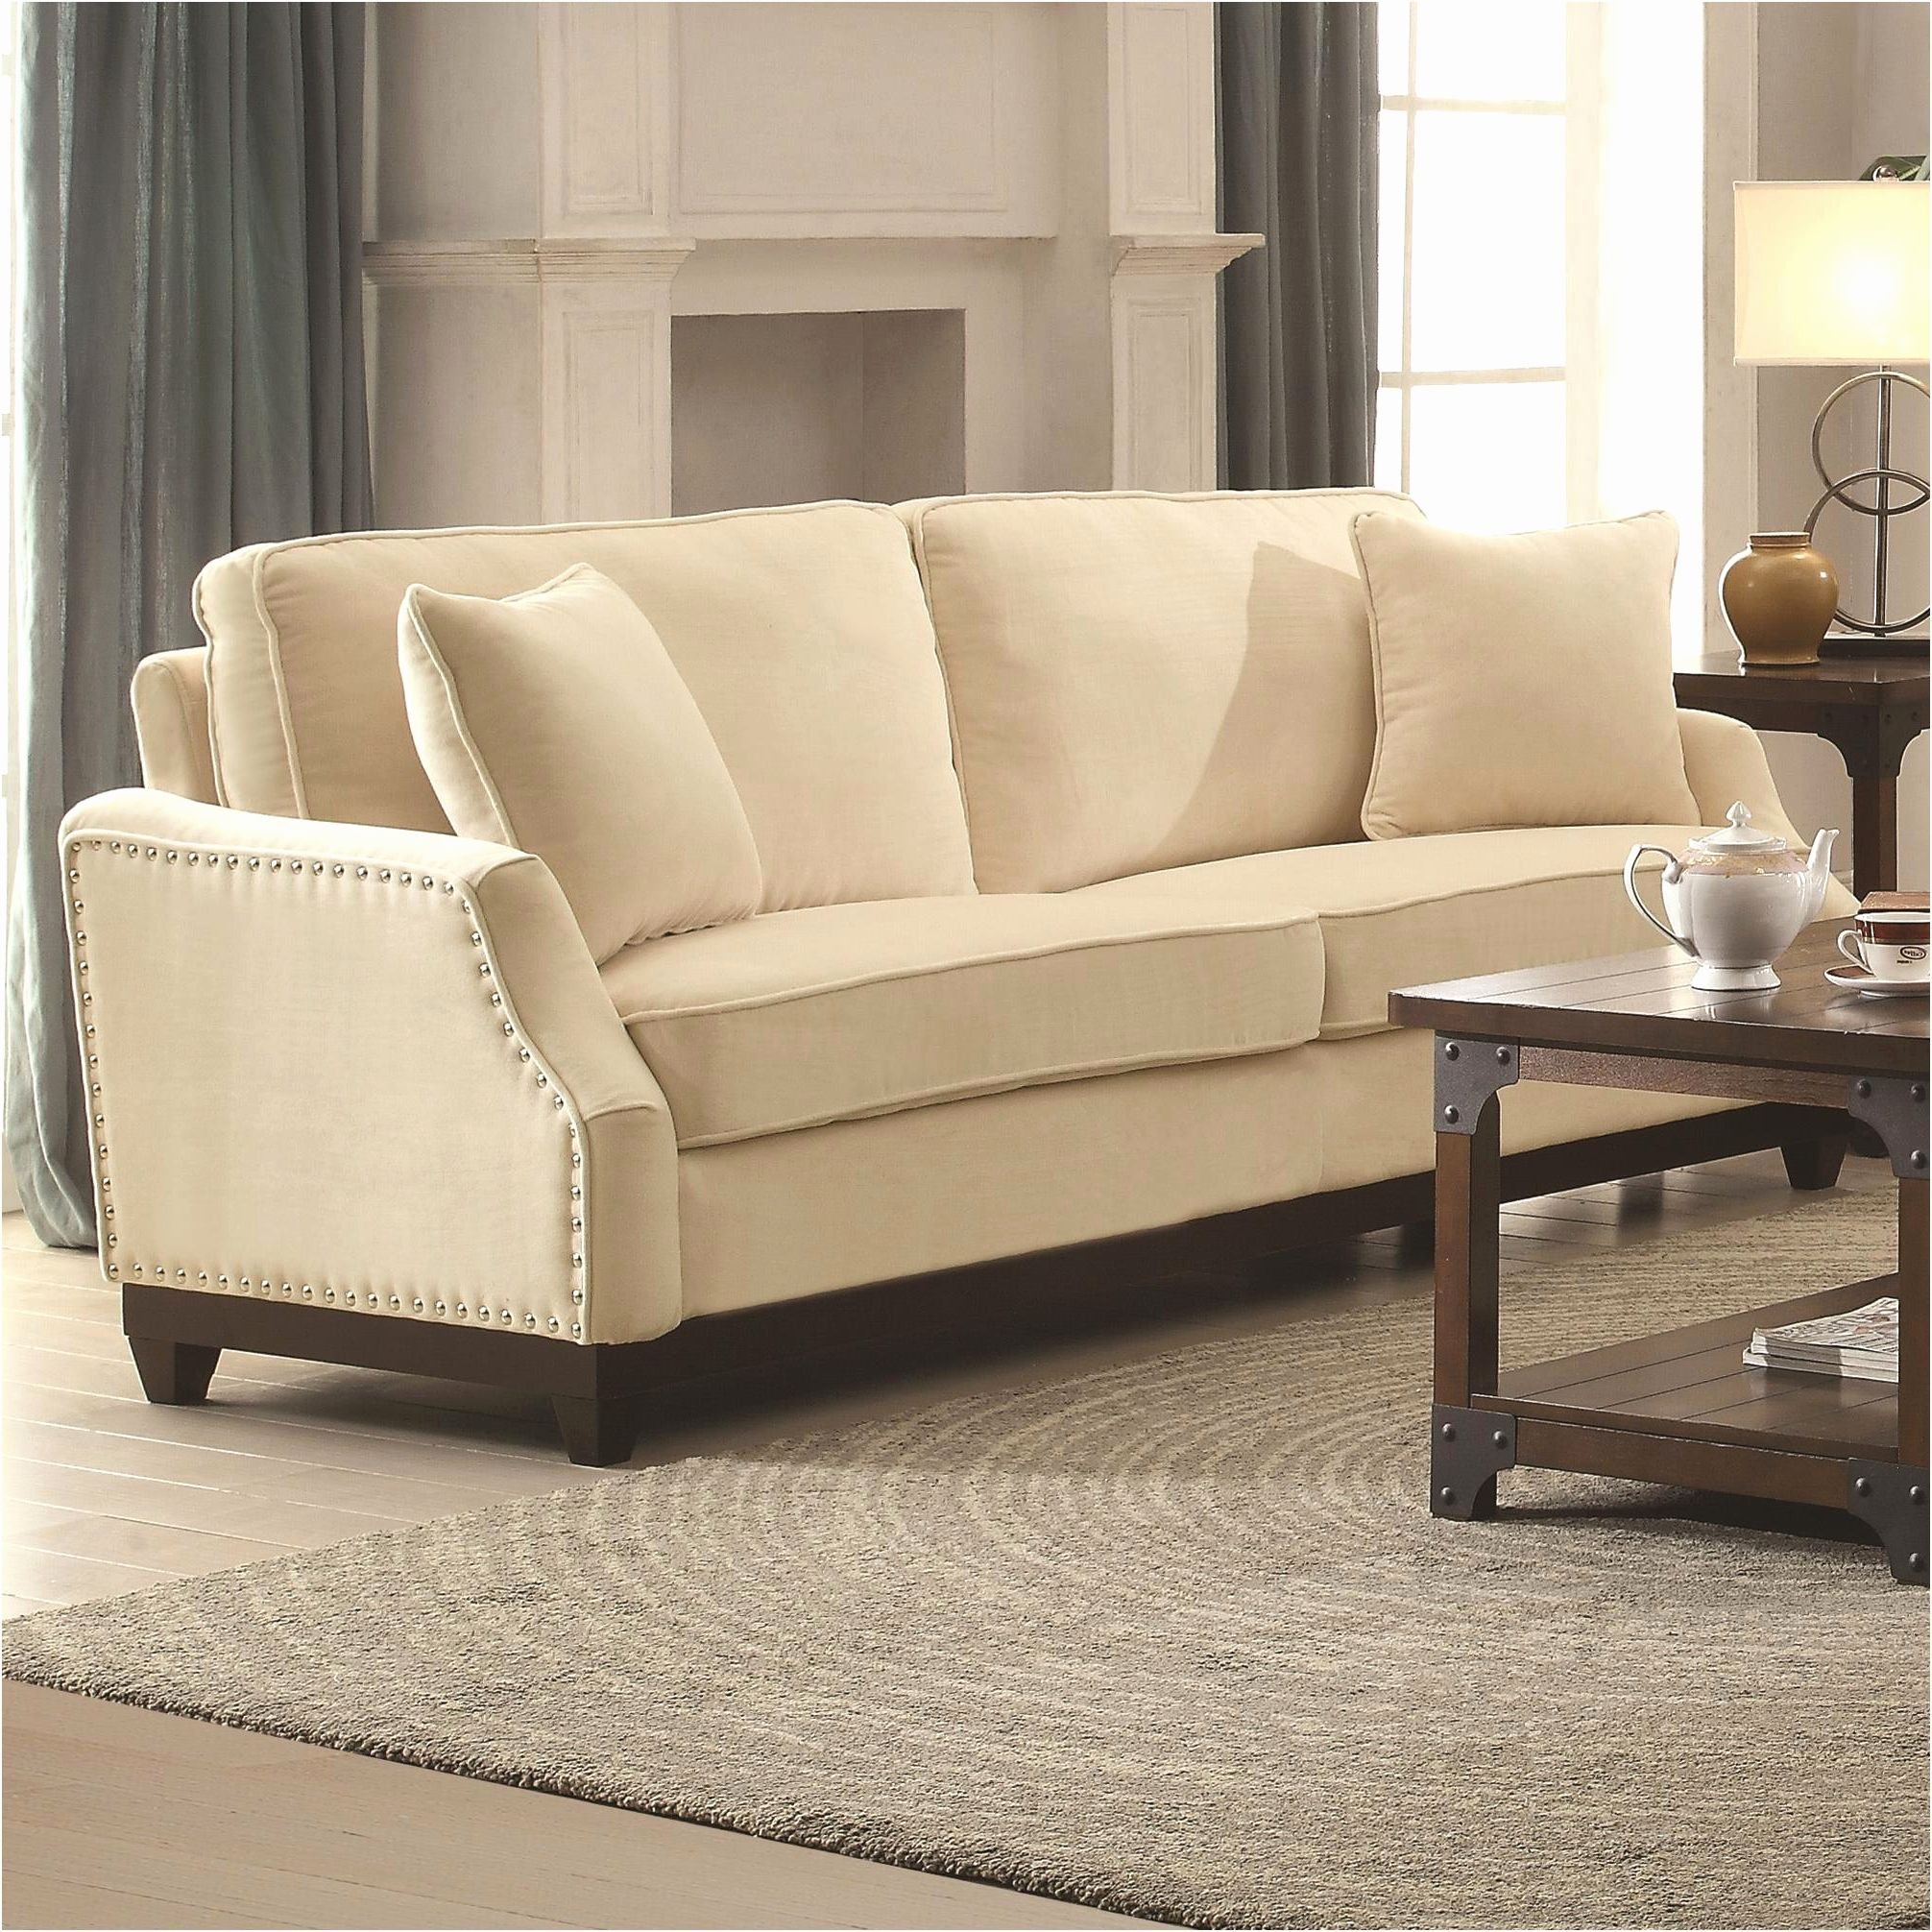 Lovely Cream Leather Sofa Pictures Chair Cool Cream Leather Sofa With  Nailheads Camelback Nailhead Check More